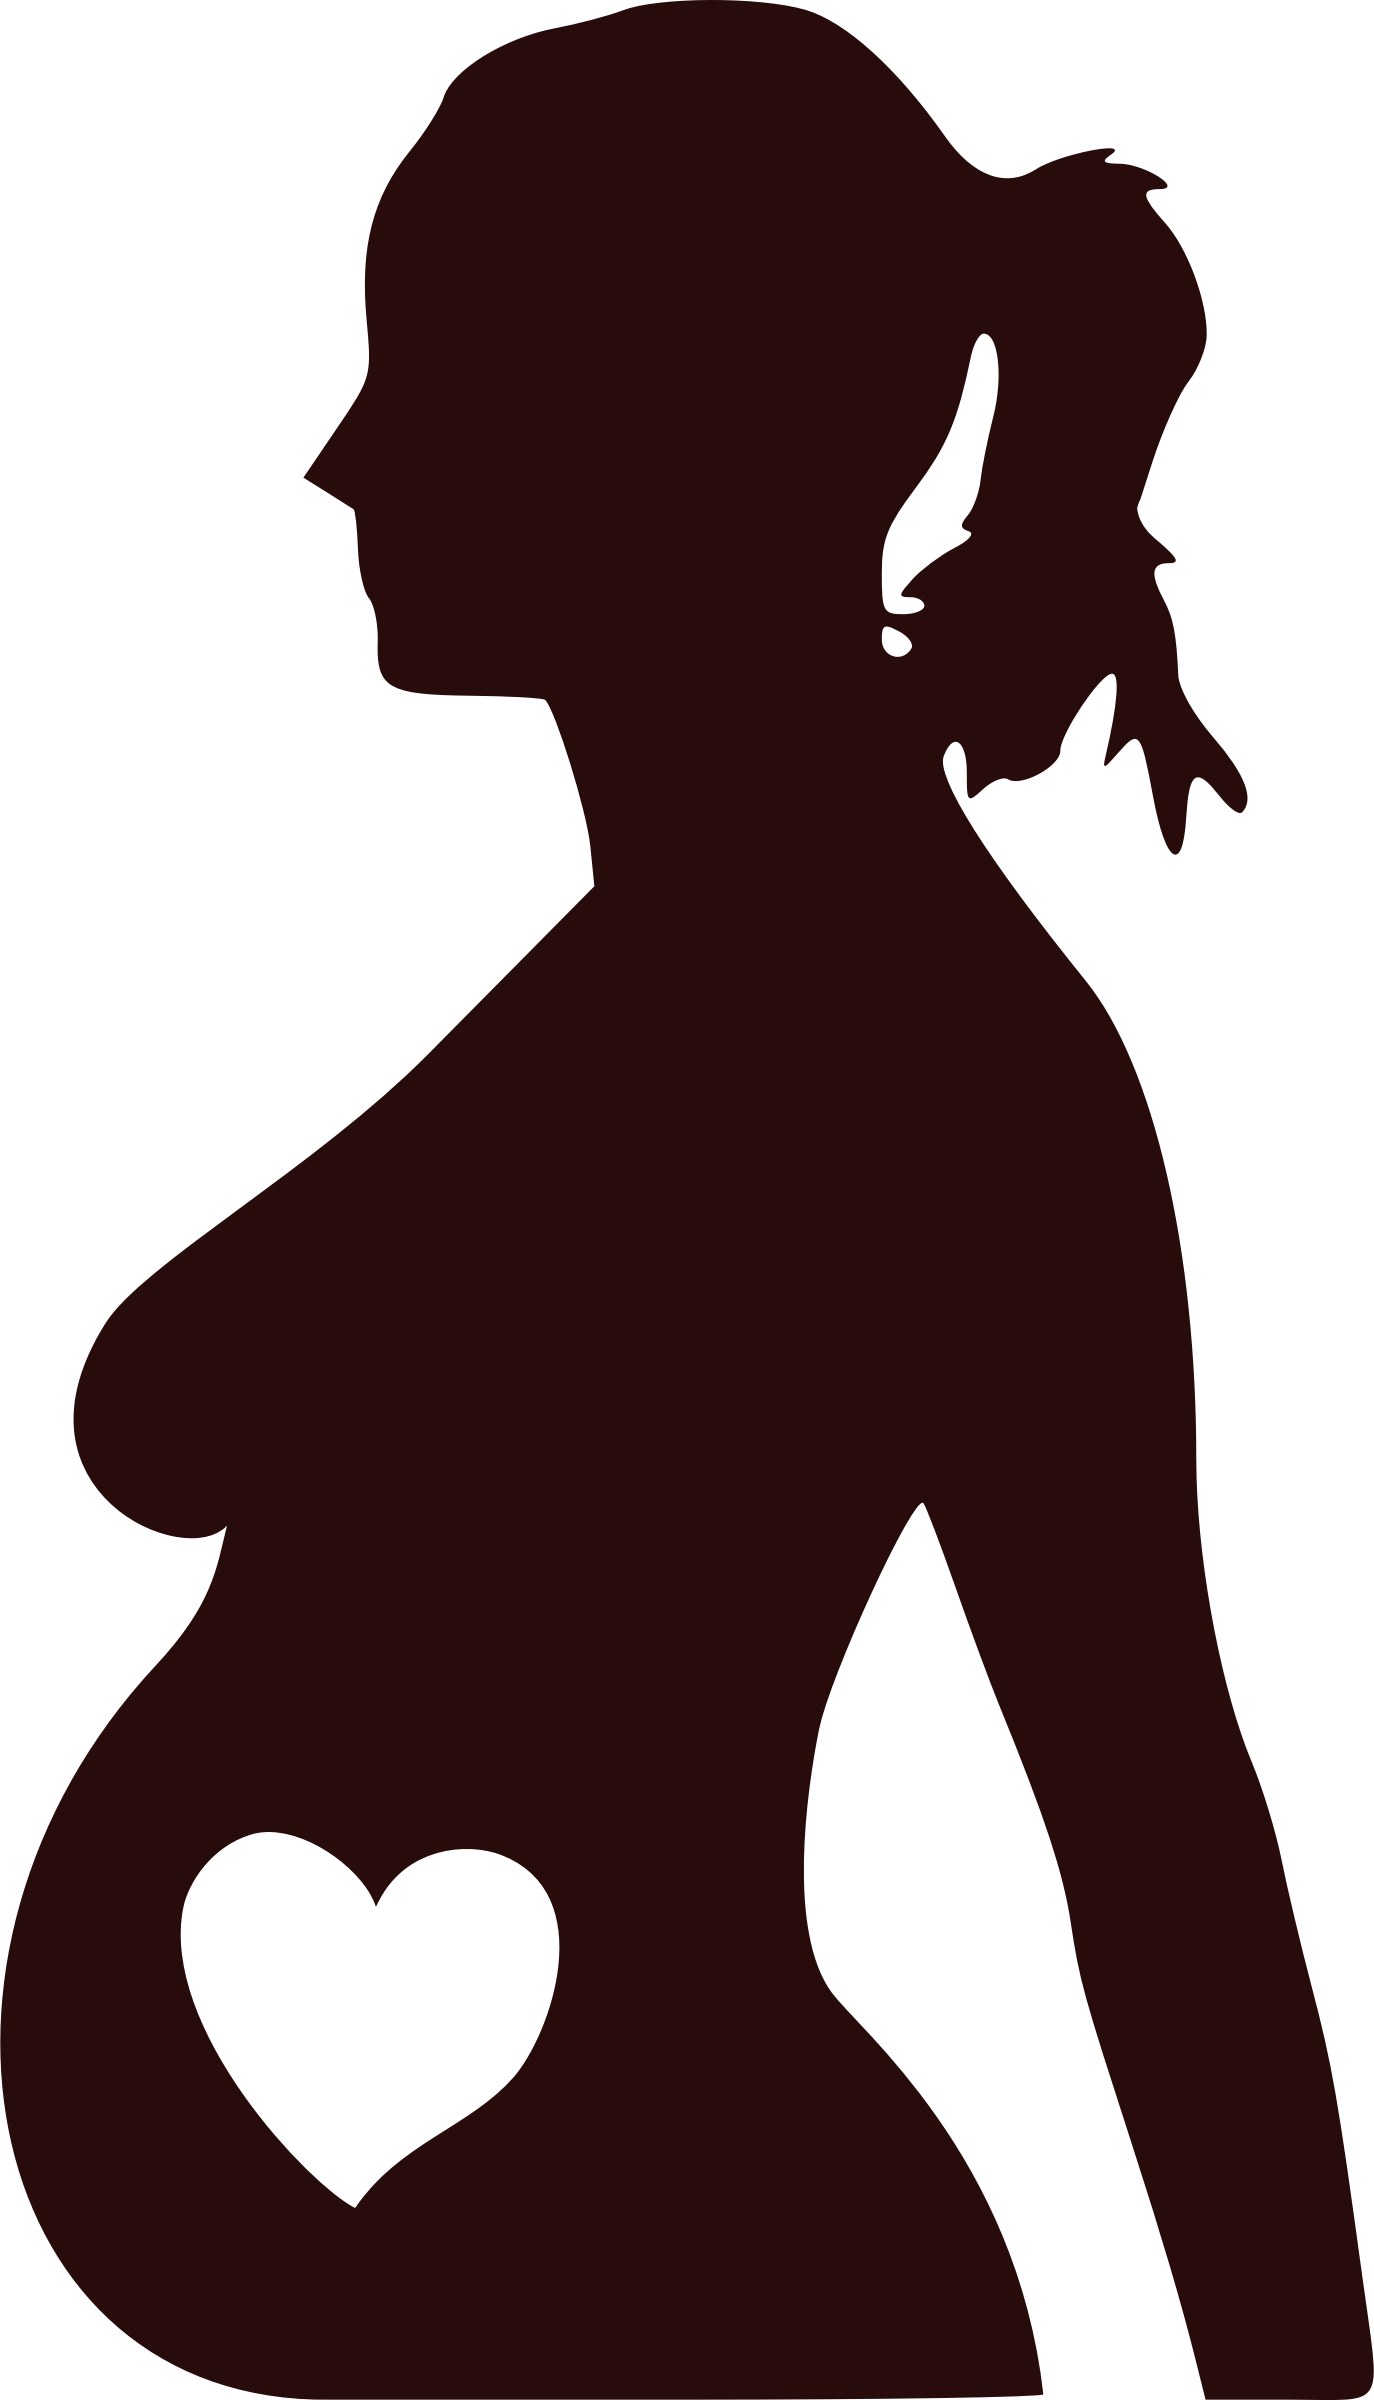 Pregnancy clipart transparent. With love big image